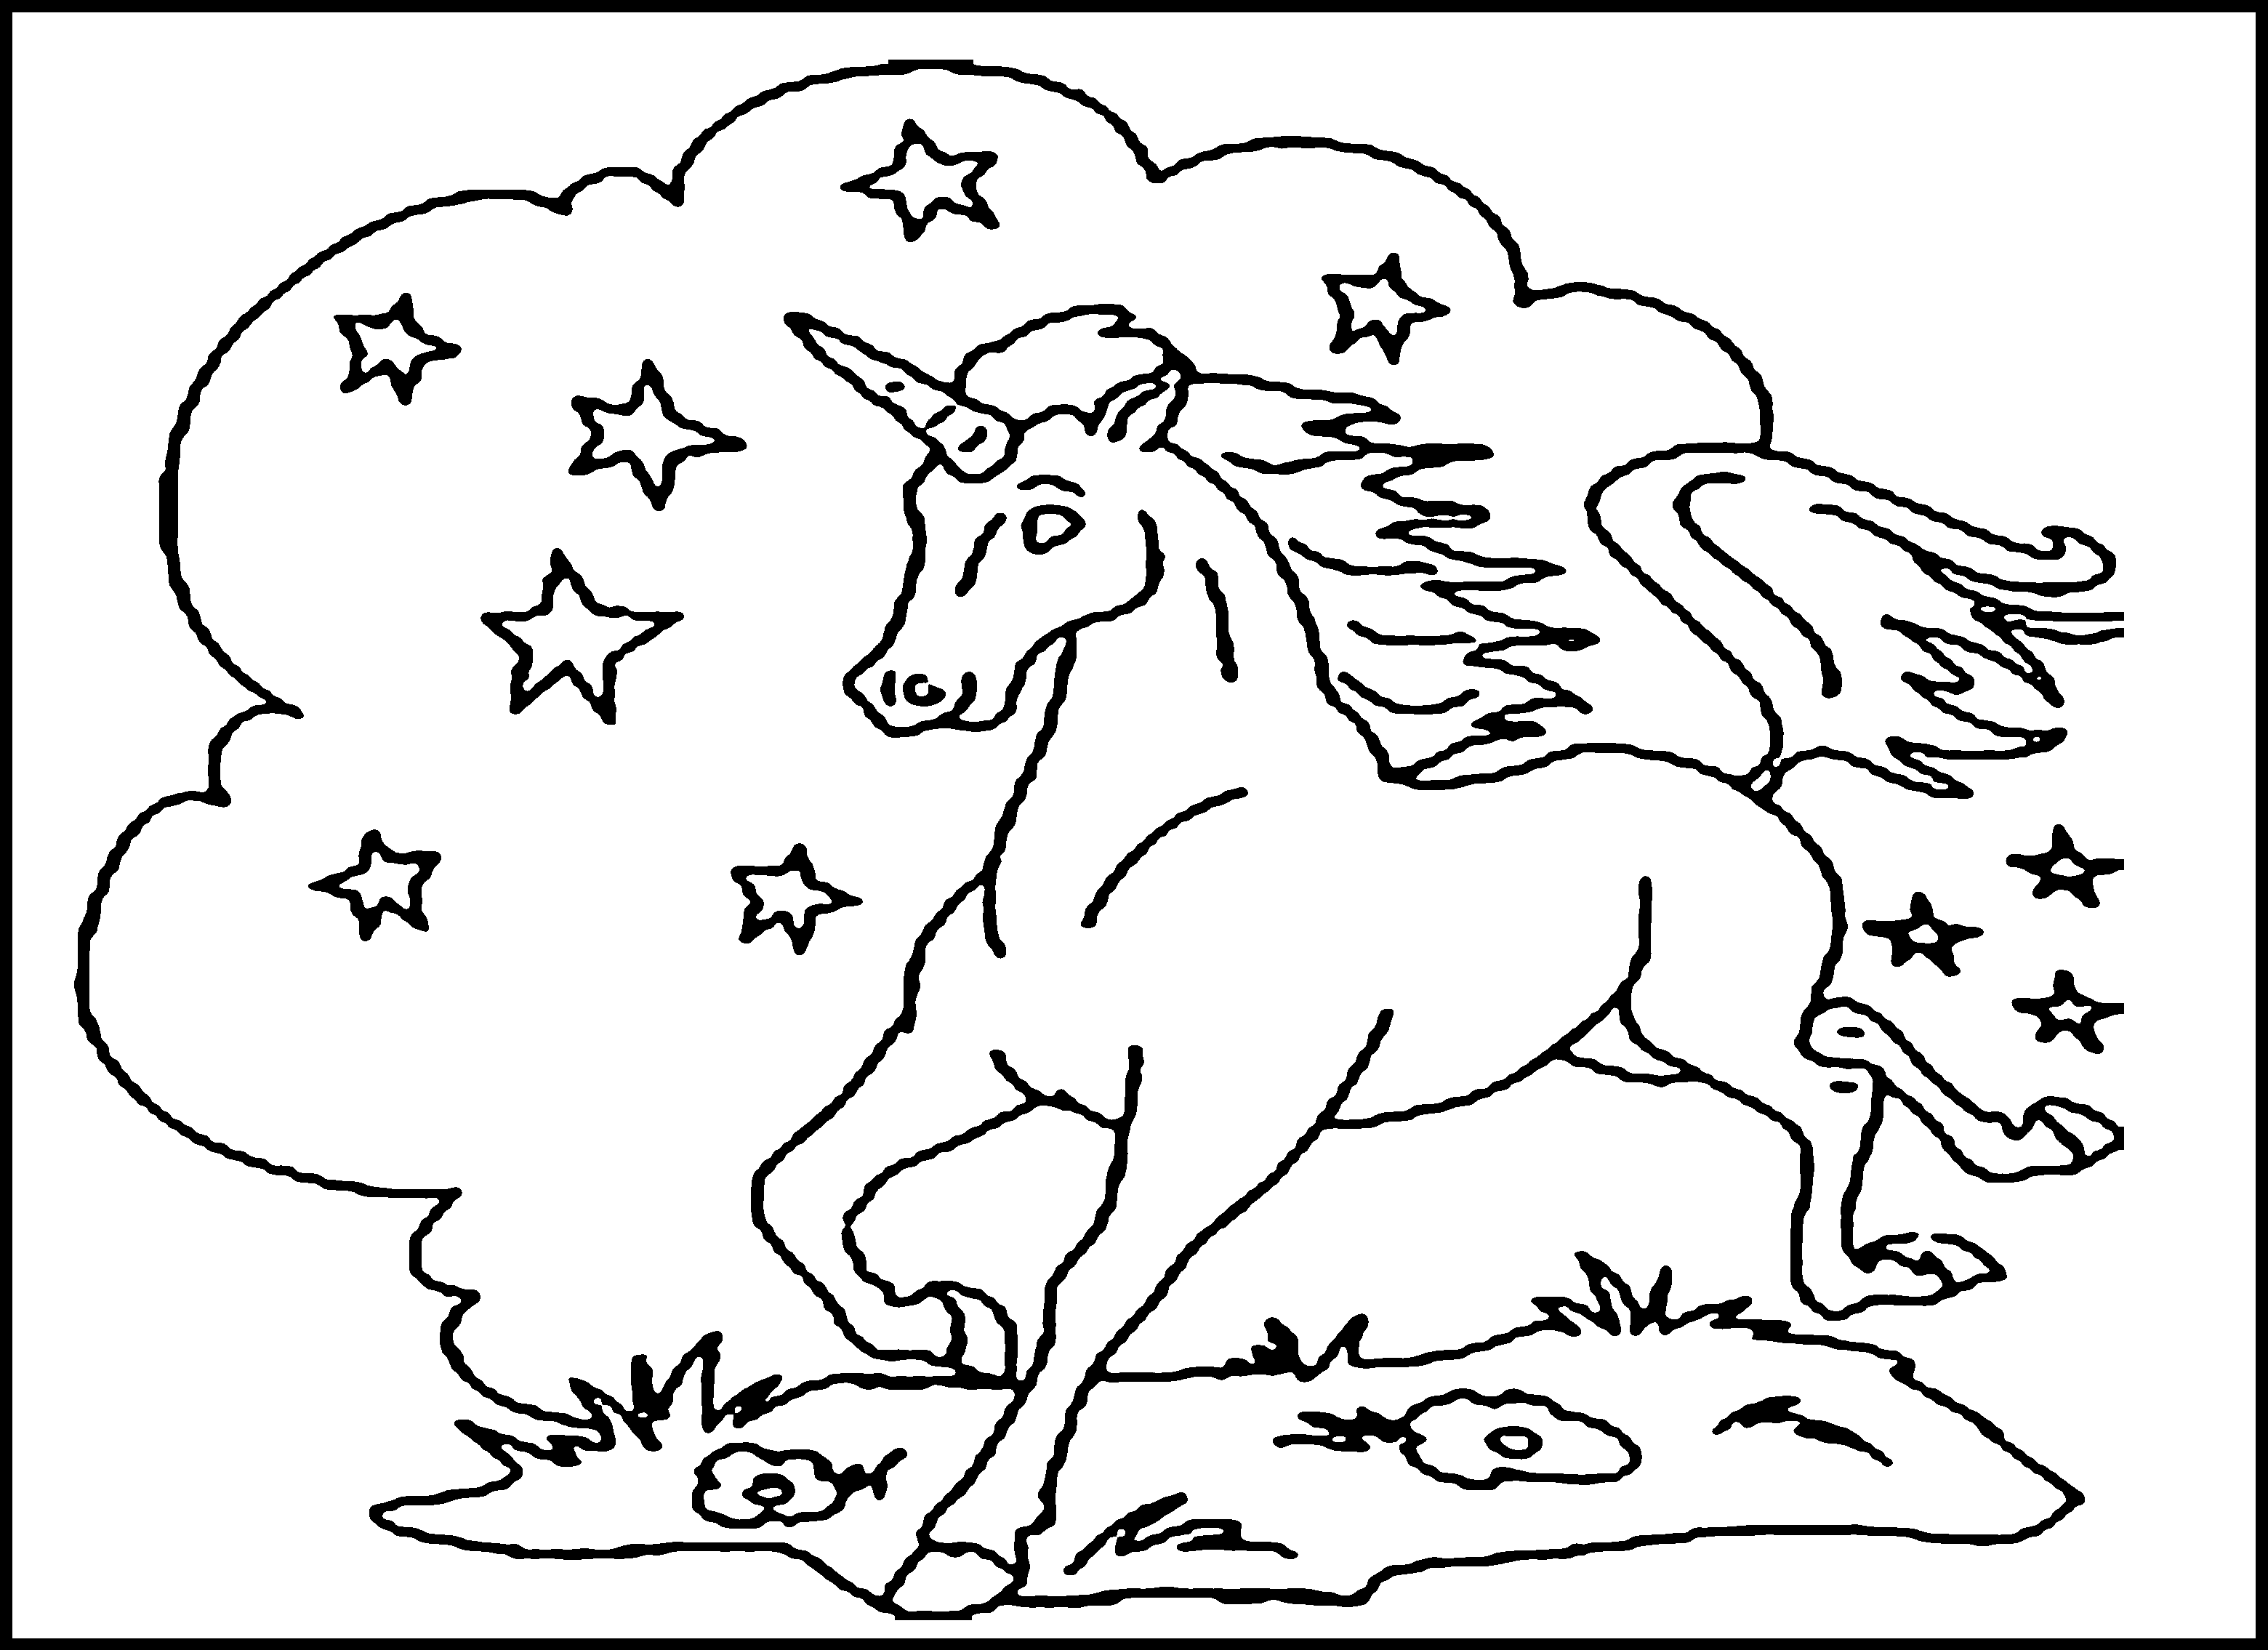 Coloring Pages Coloring Pages For Printing colouring pages to print coloring free printable unicorn for kids